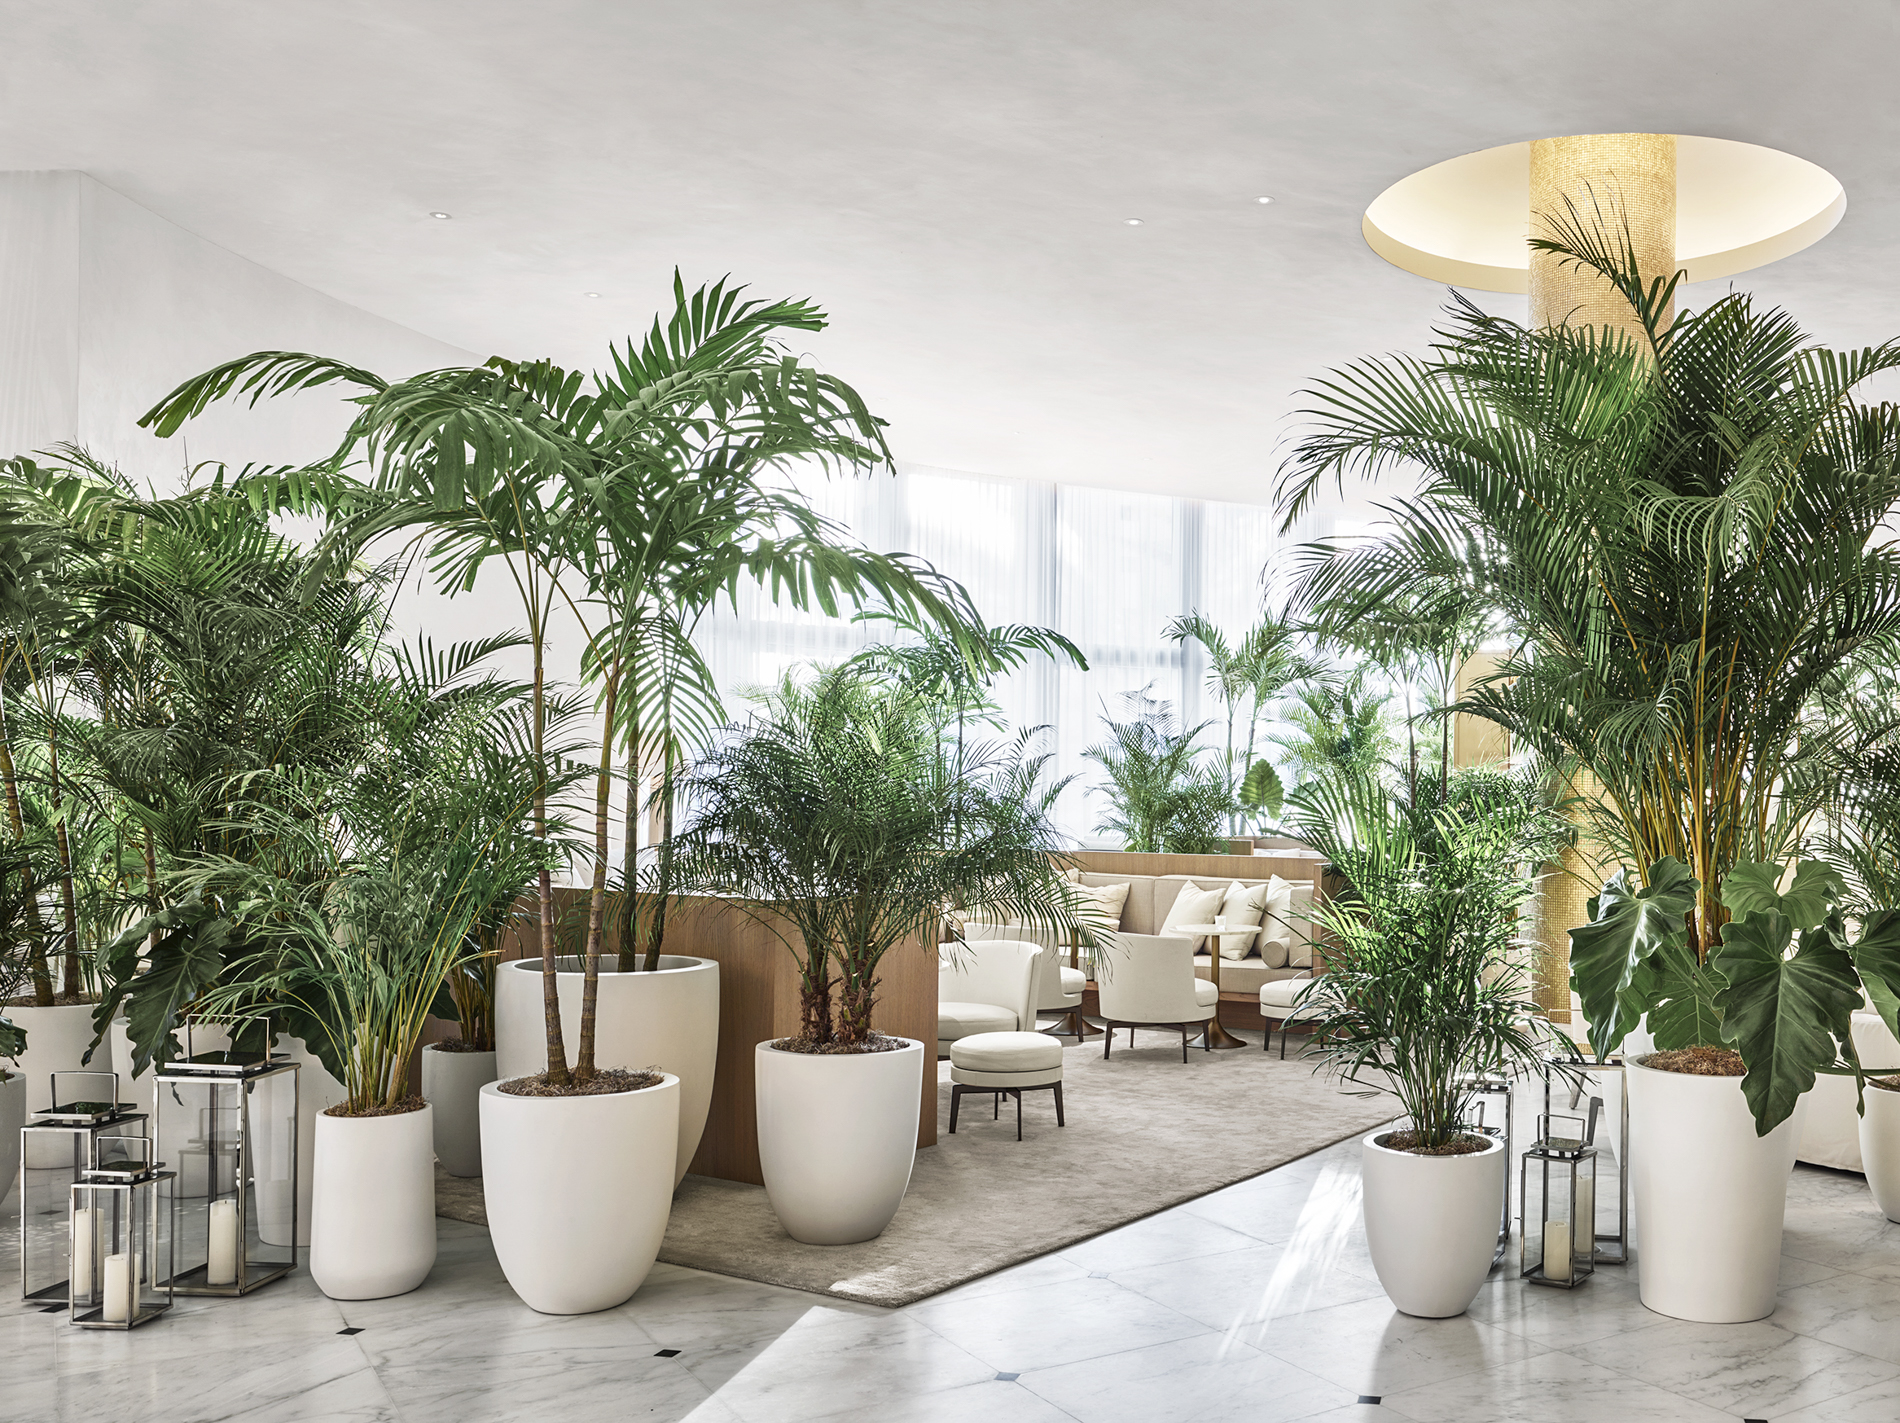 The lobby at the Miami Beach EDITION